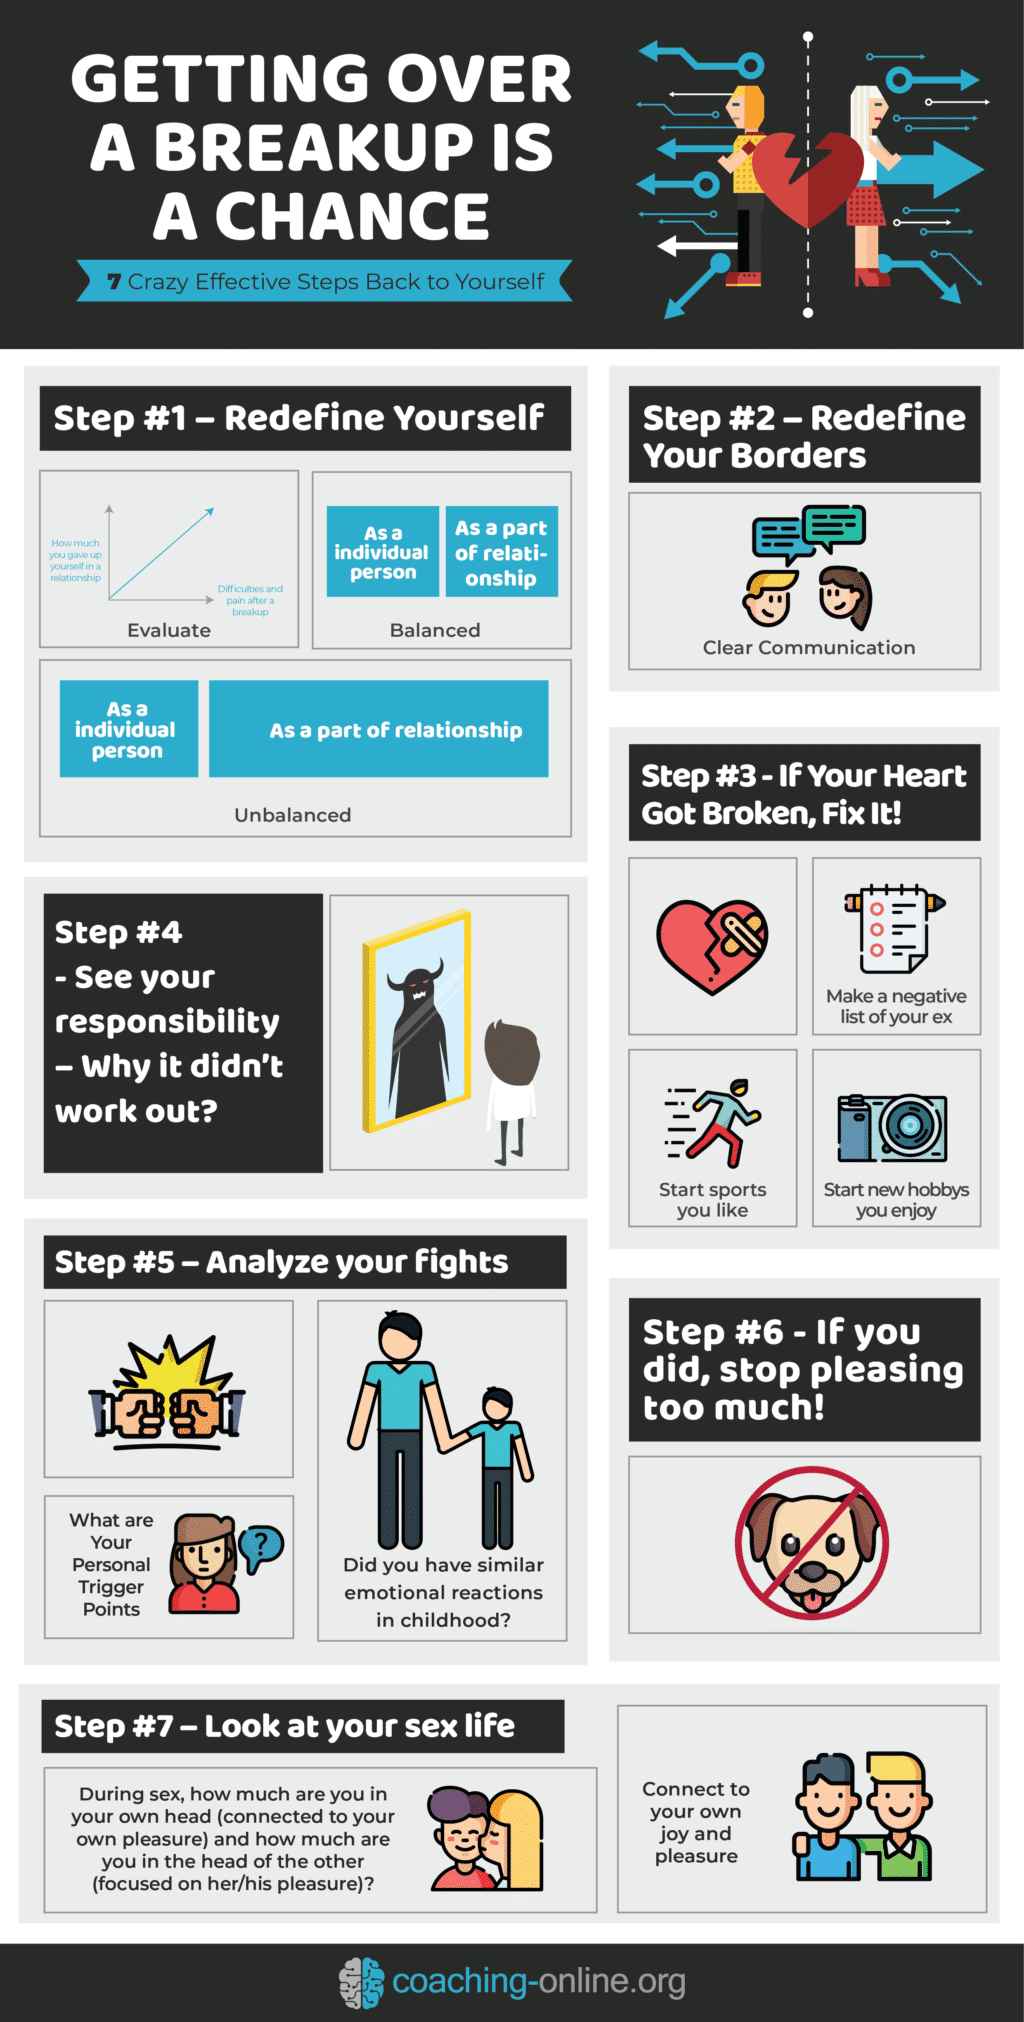 Getting-Over-A-Breakup-Infographic-plaza